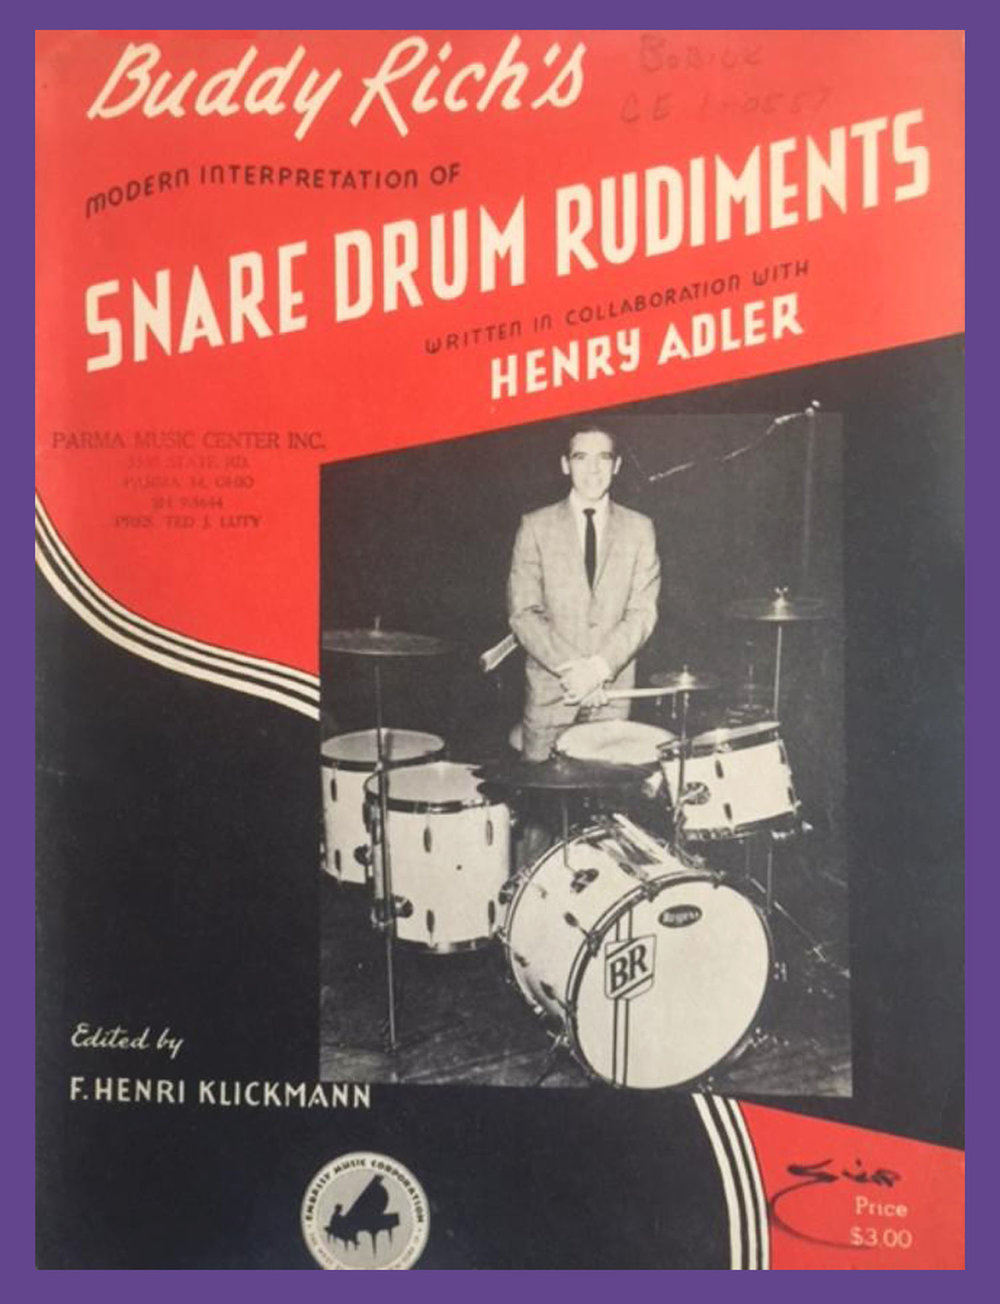 Buddy-Rich-Book.jpg